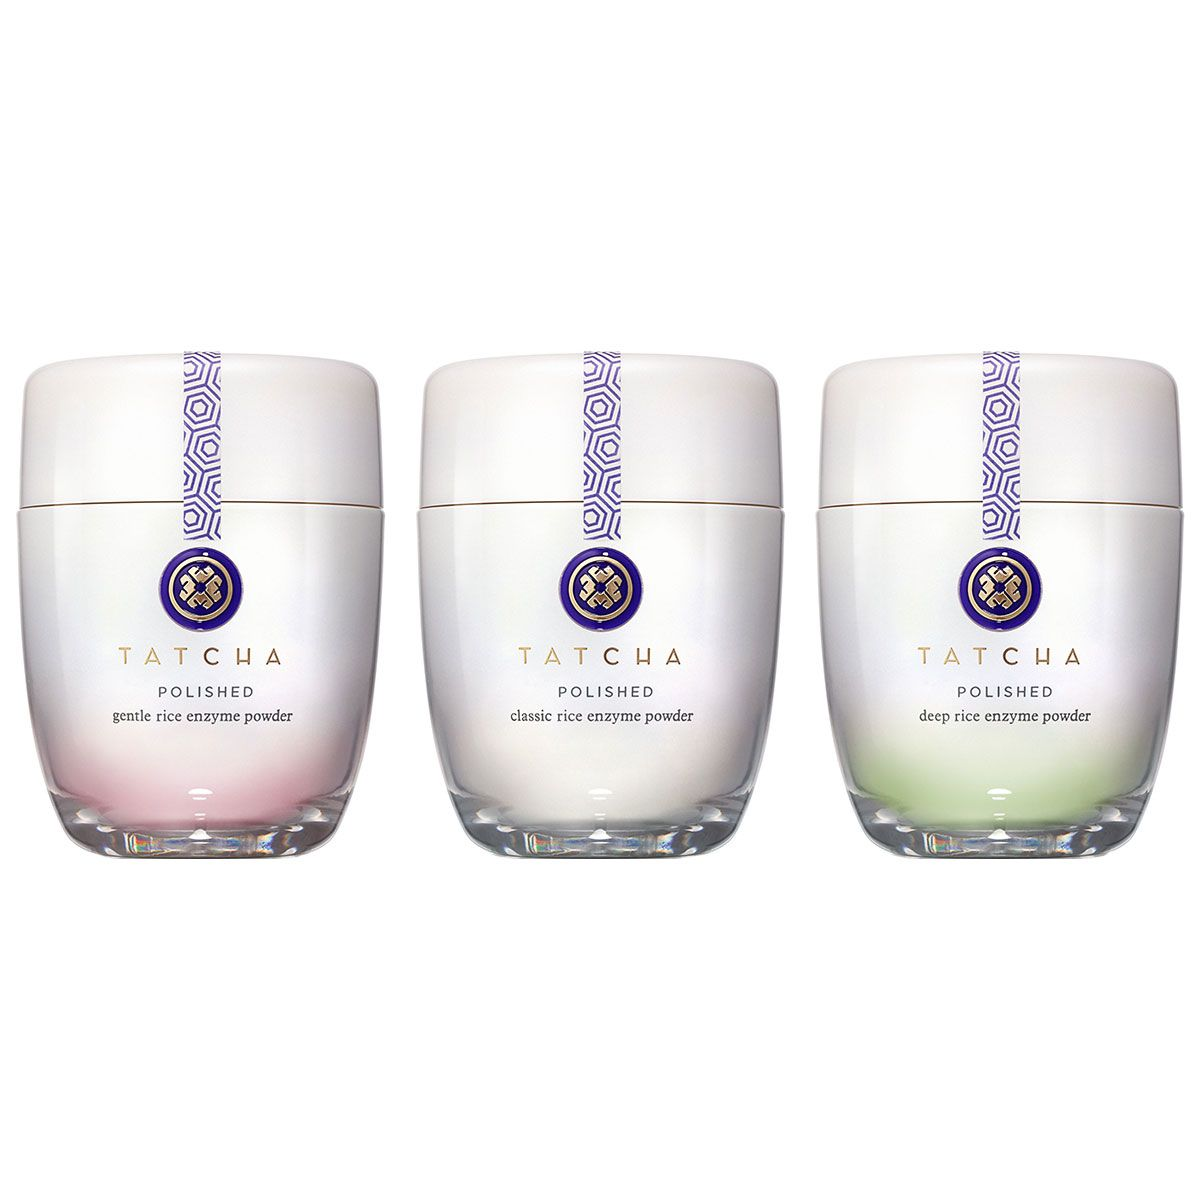 Tatcha Rice Enzyme Powder Microbead Free Exfoliants That